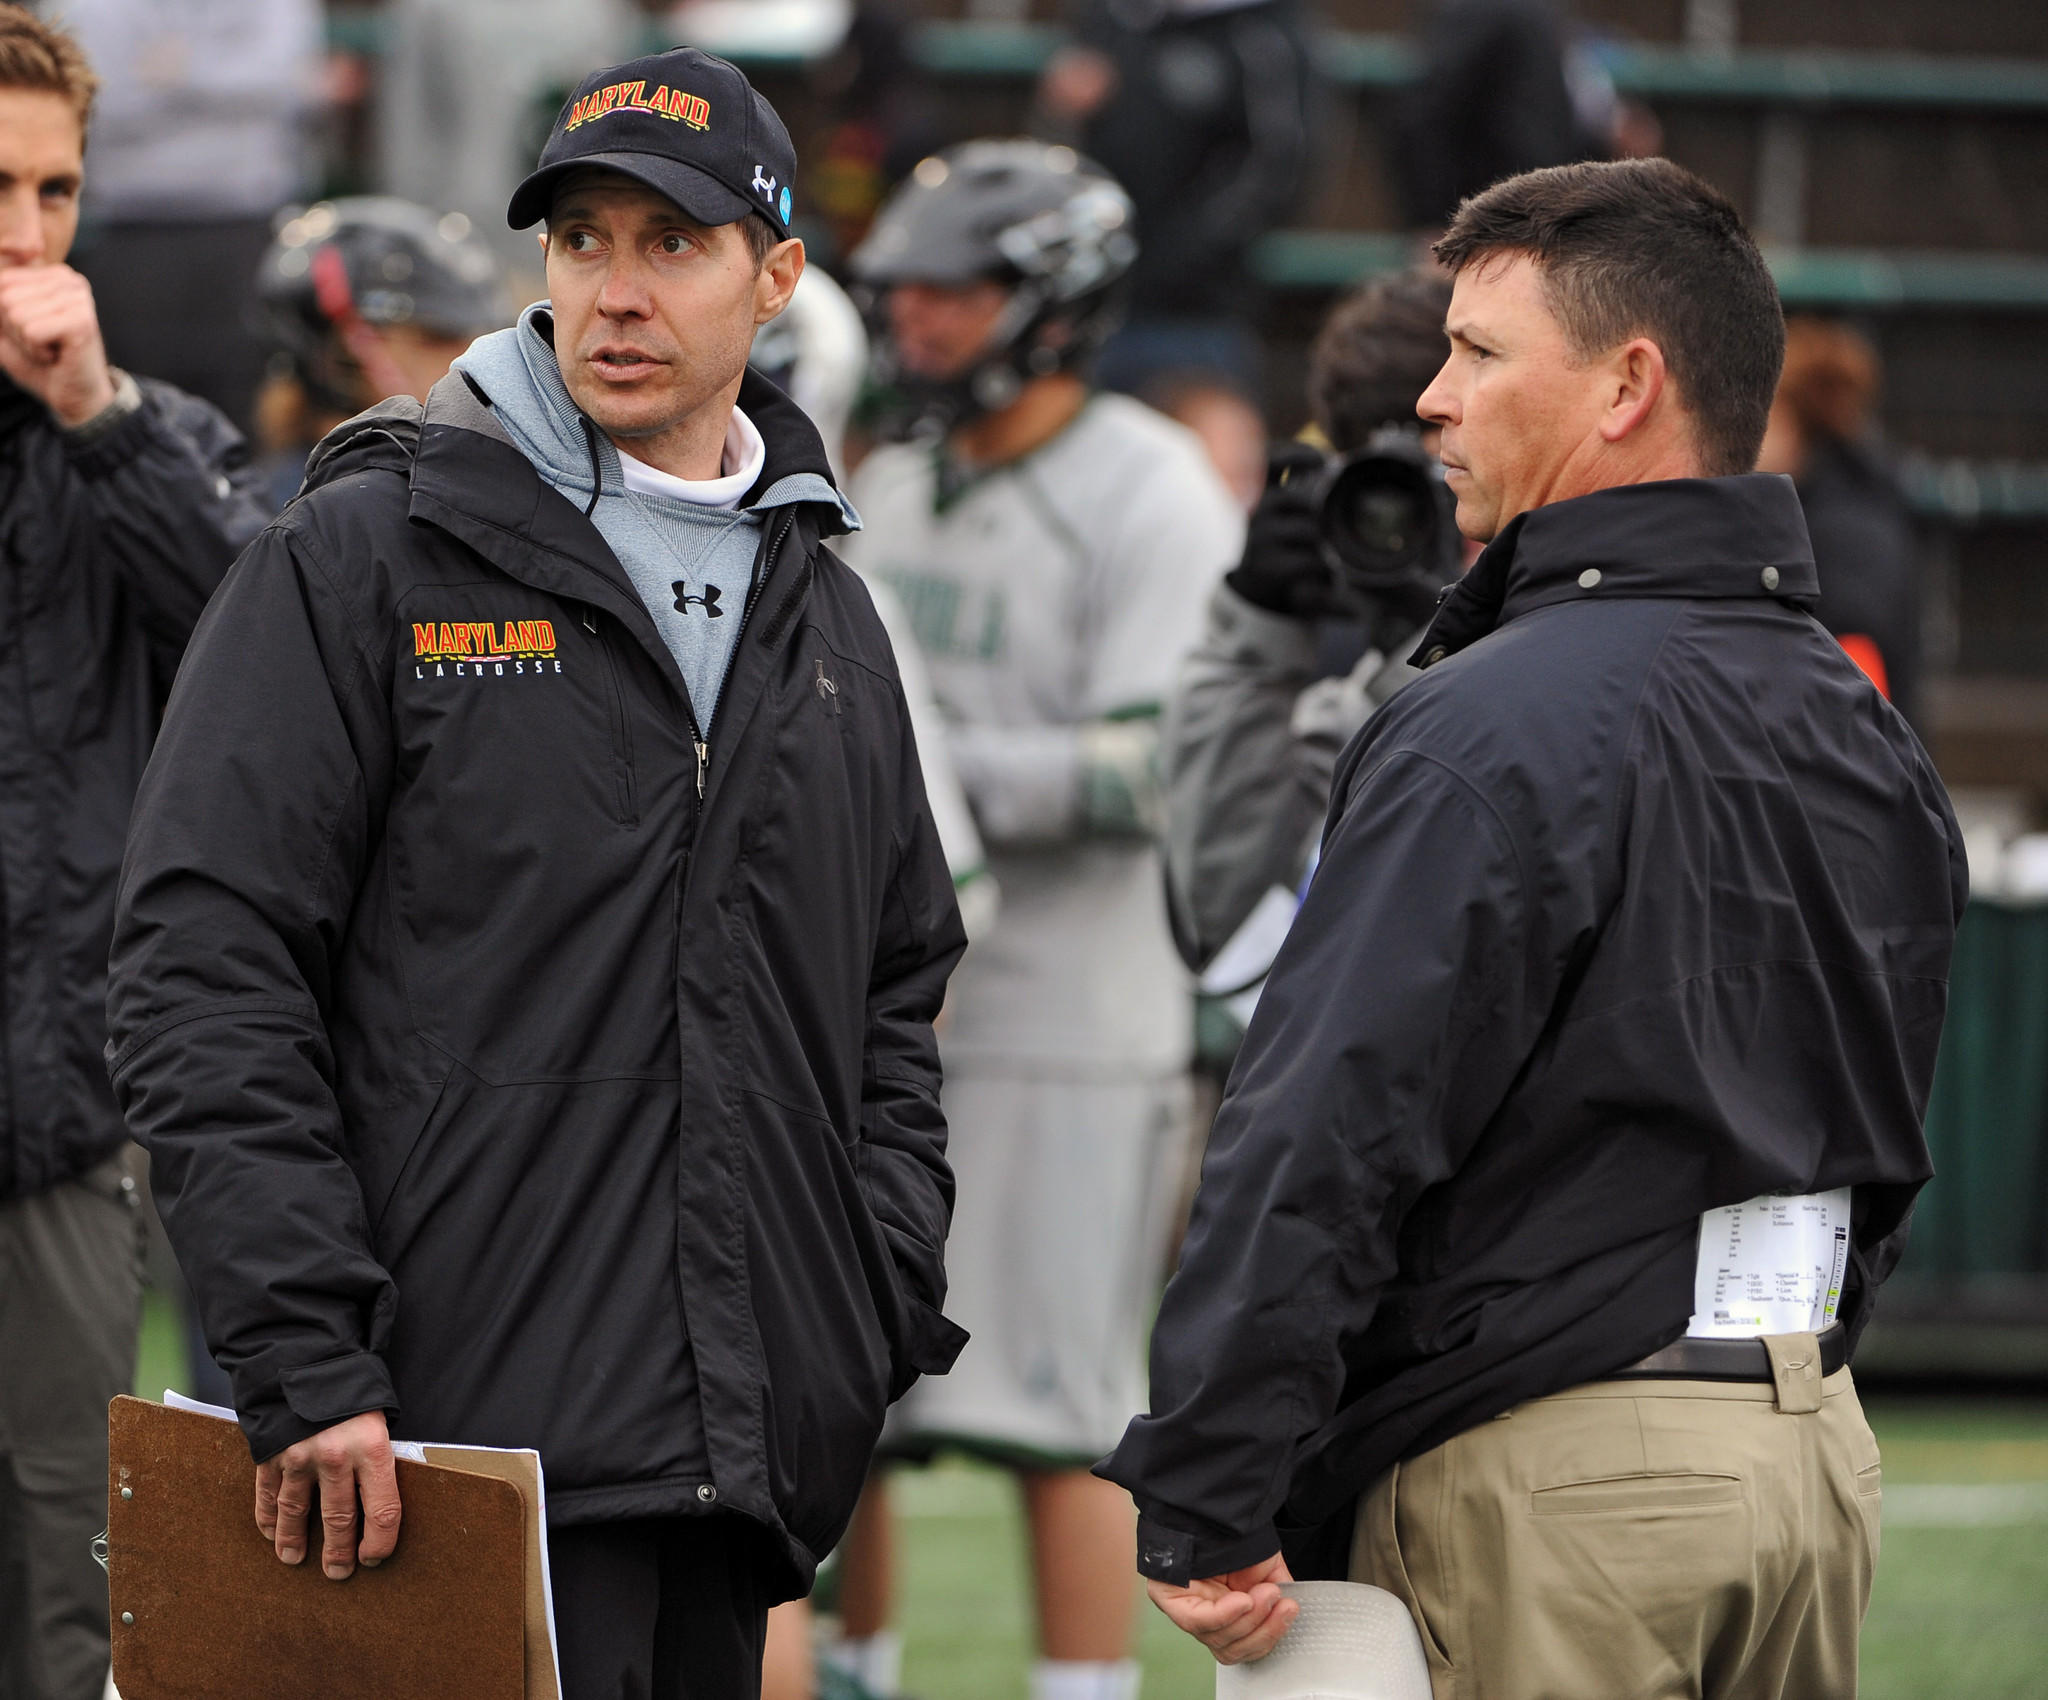 Maryland coach John Tillman, left, talks with Loyola coach Charley Toomey after their 2013 game. The Terps won, 12-10, in a rematch of the previous spring's title game.